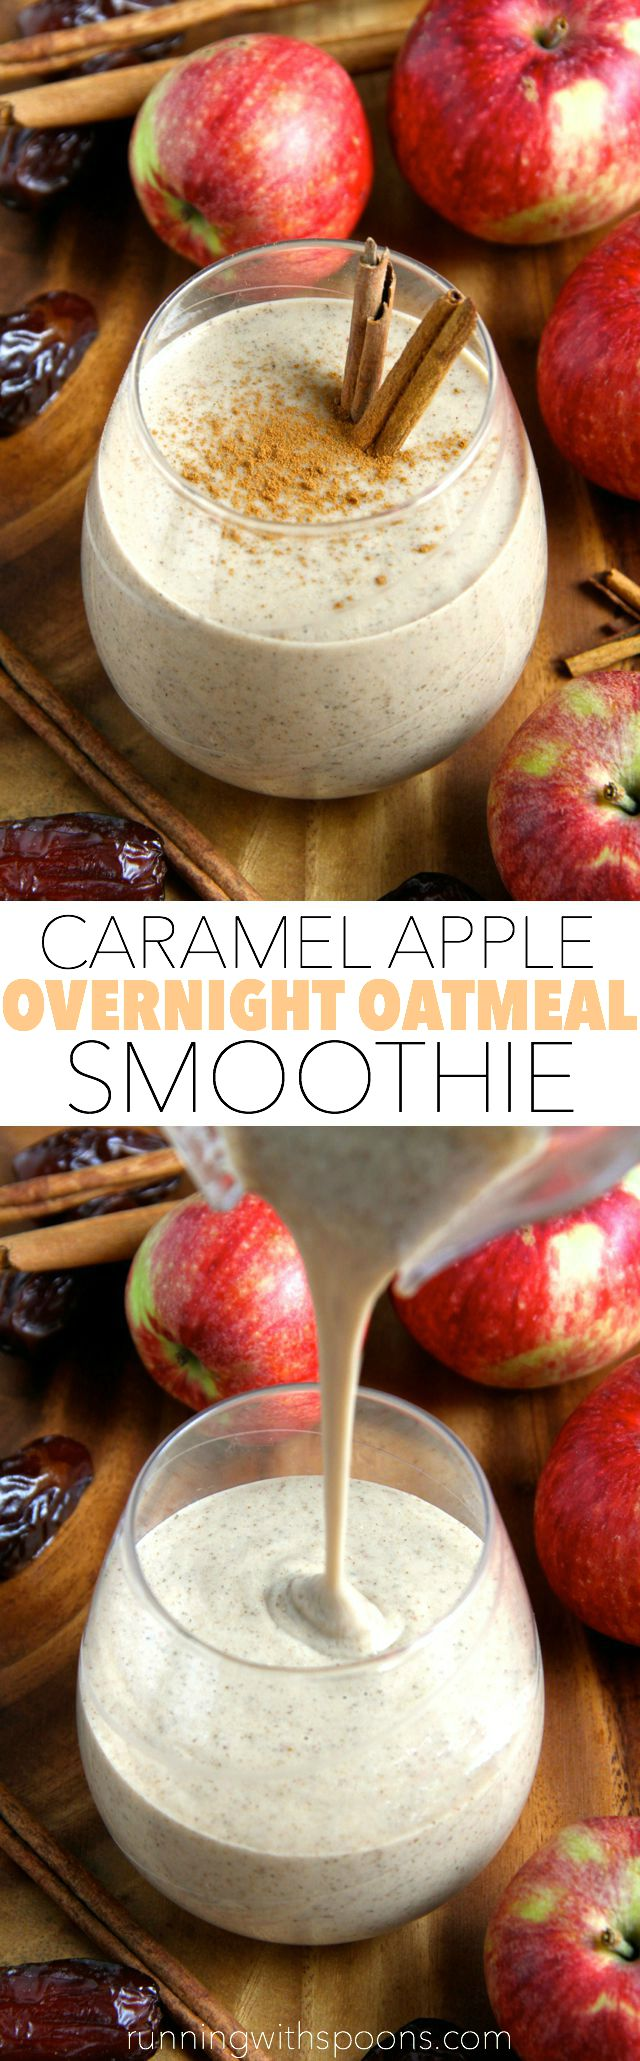 Caramel Apple Overnight Oatmeal Smoothie -- smooth, creamy, and sure to keep you satisfied for hours! This comforting fall-inspired smoothie makes a perfect healthy breakfast or snack!    runningwithspoons.com #vegan #fall #snack #breakfast